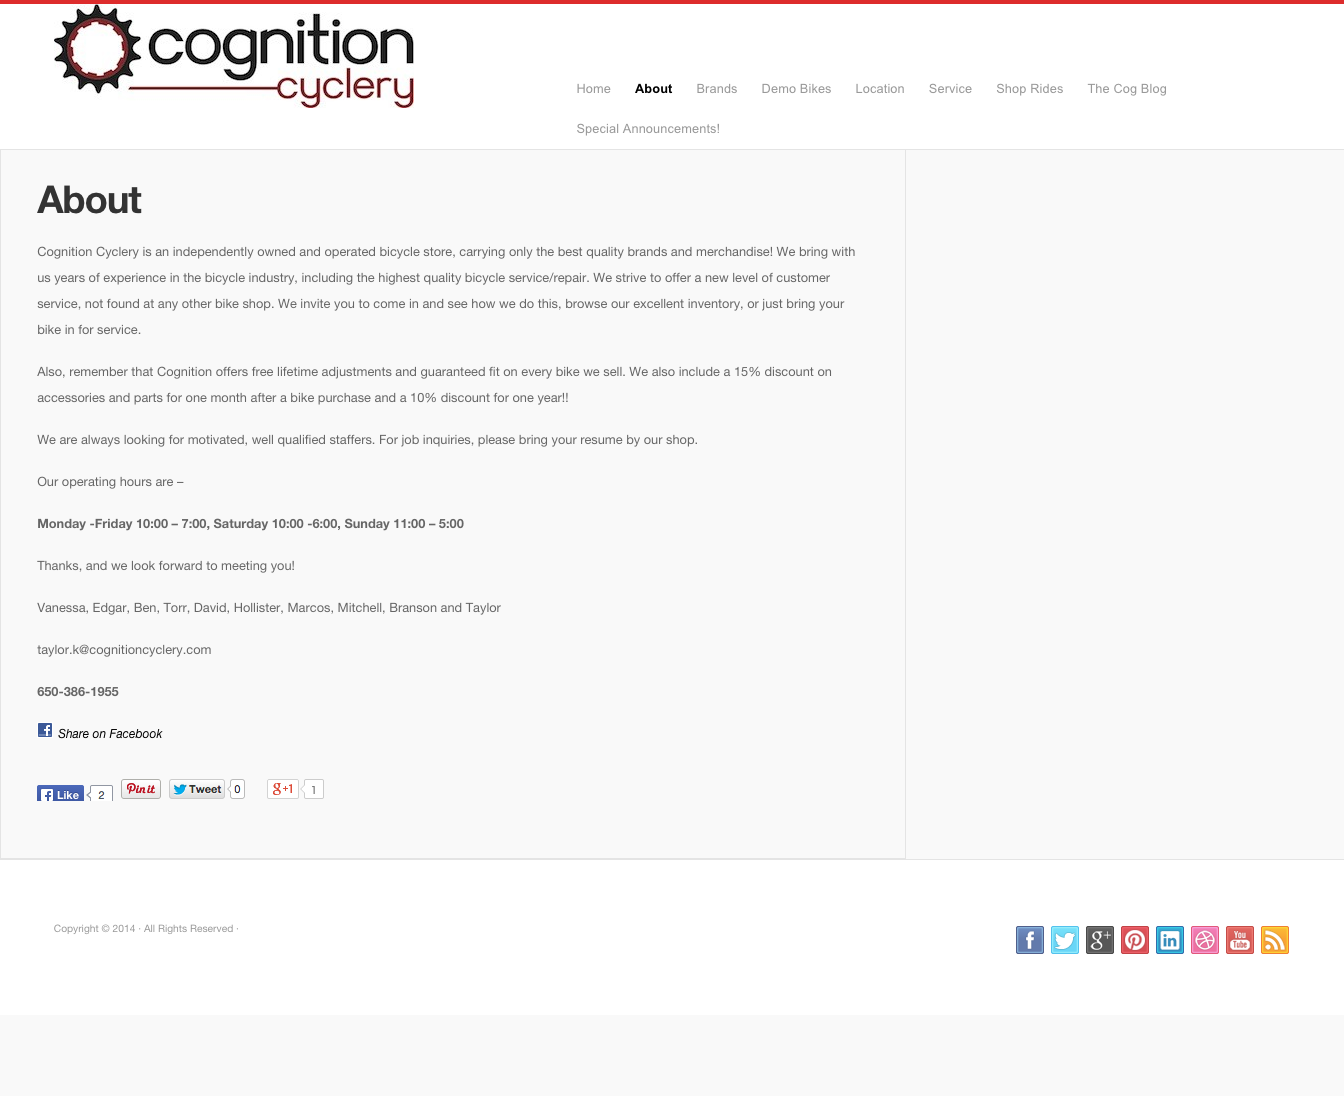 02-old-about-cognitioncyclery_com.png